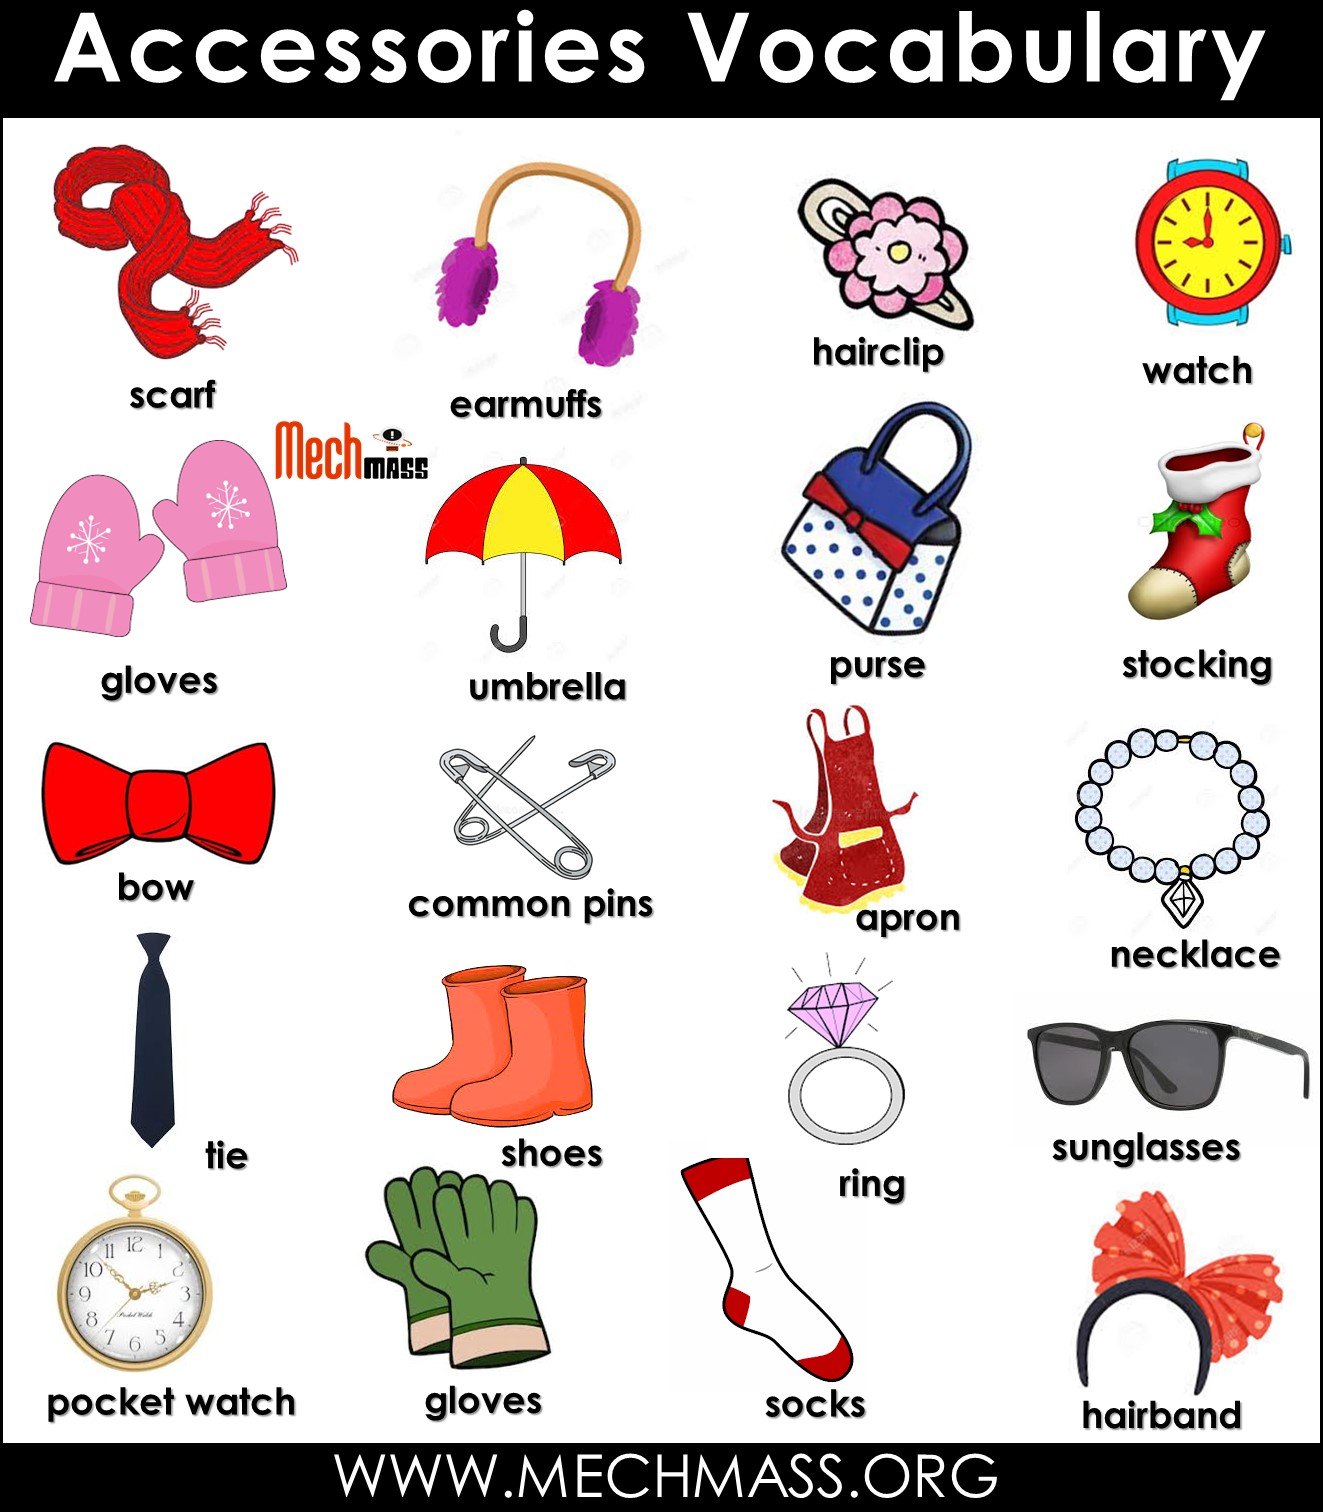 accessories vocabulary words with pictures